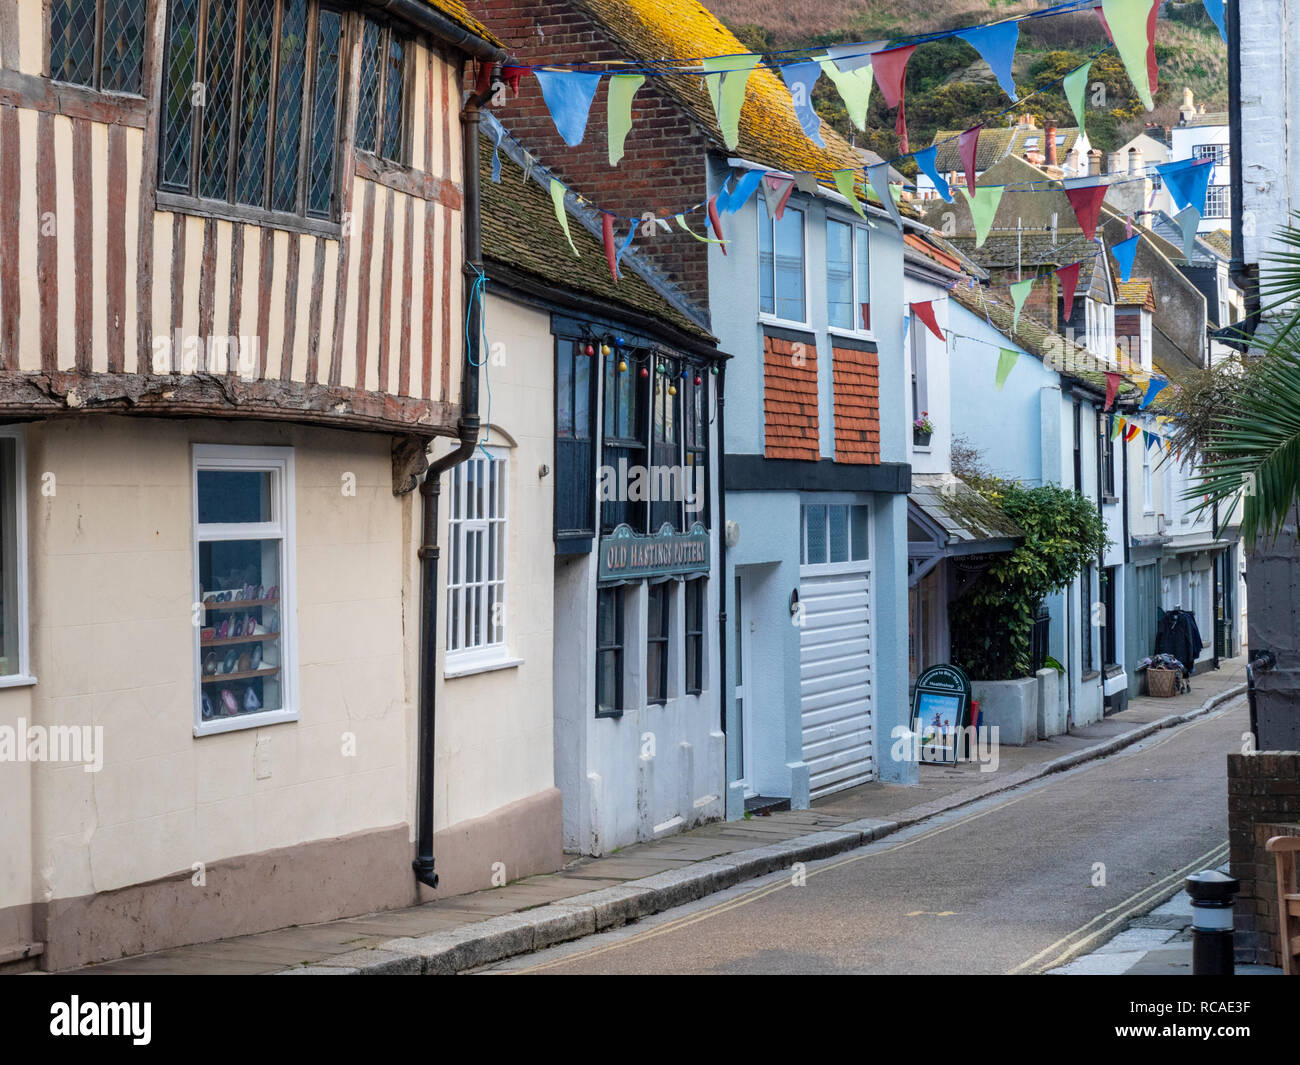 Courthouse Street narrow street with old houses and buildings Hastings Old Town East Sussex UK - Stock Image